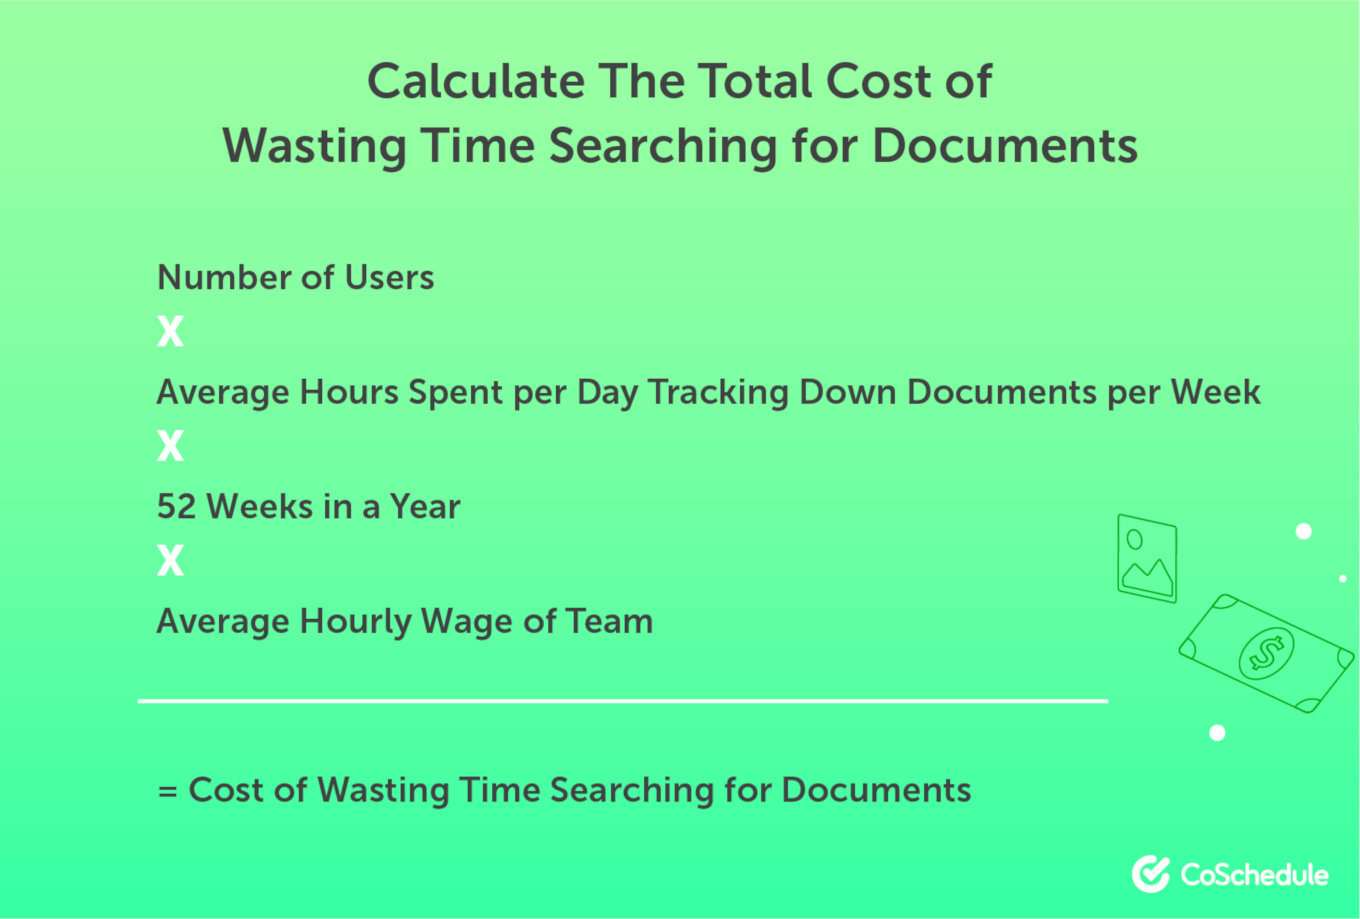 Calculate the Total Cost of Wasting Time Searching for Documents